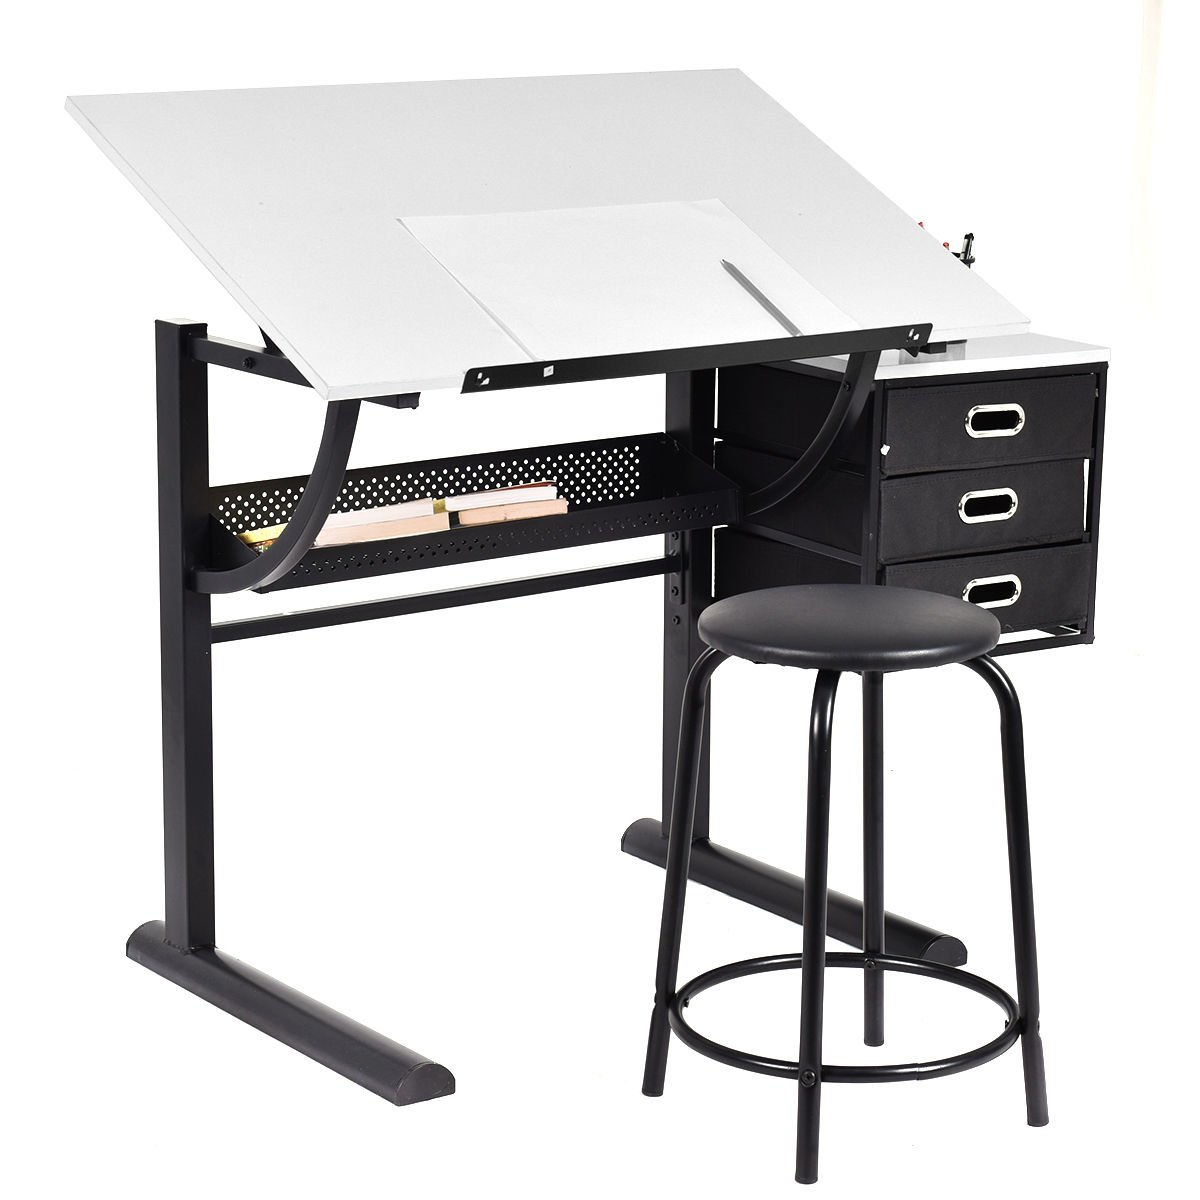 Tangkula Drafting Table Art & Craft Drawing Desk Art Hobby Folding  Adjustable w/ Stool - Drafting Tables Amazon.com